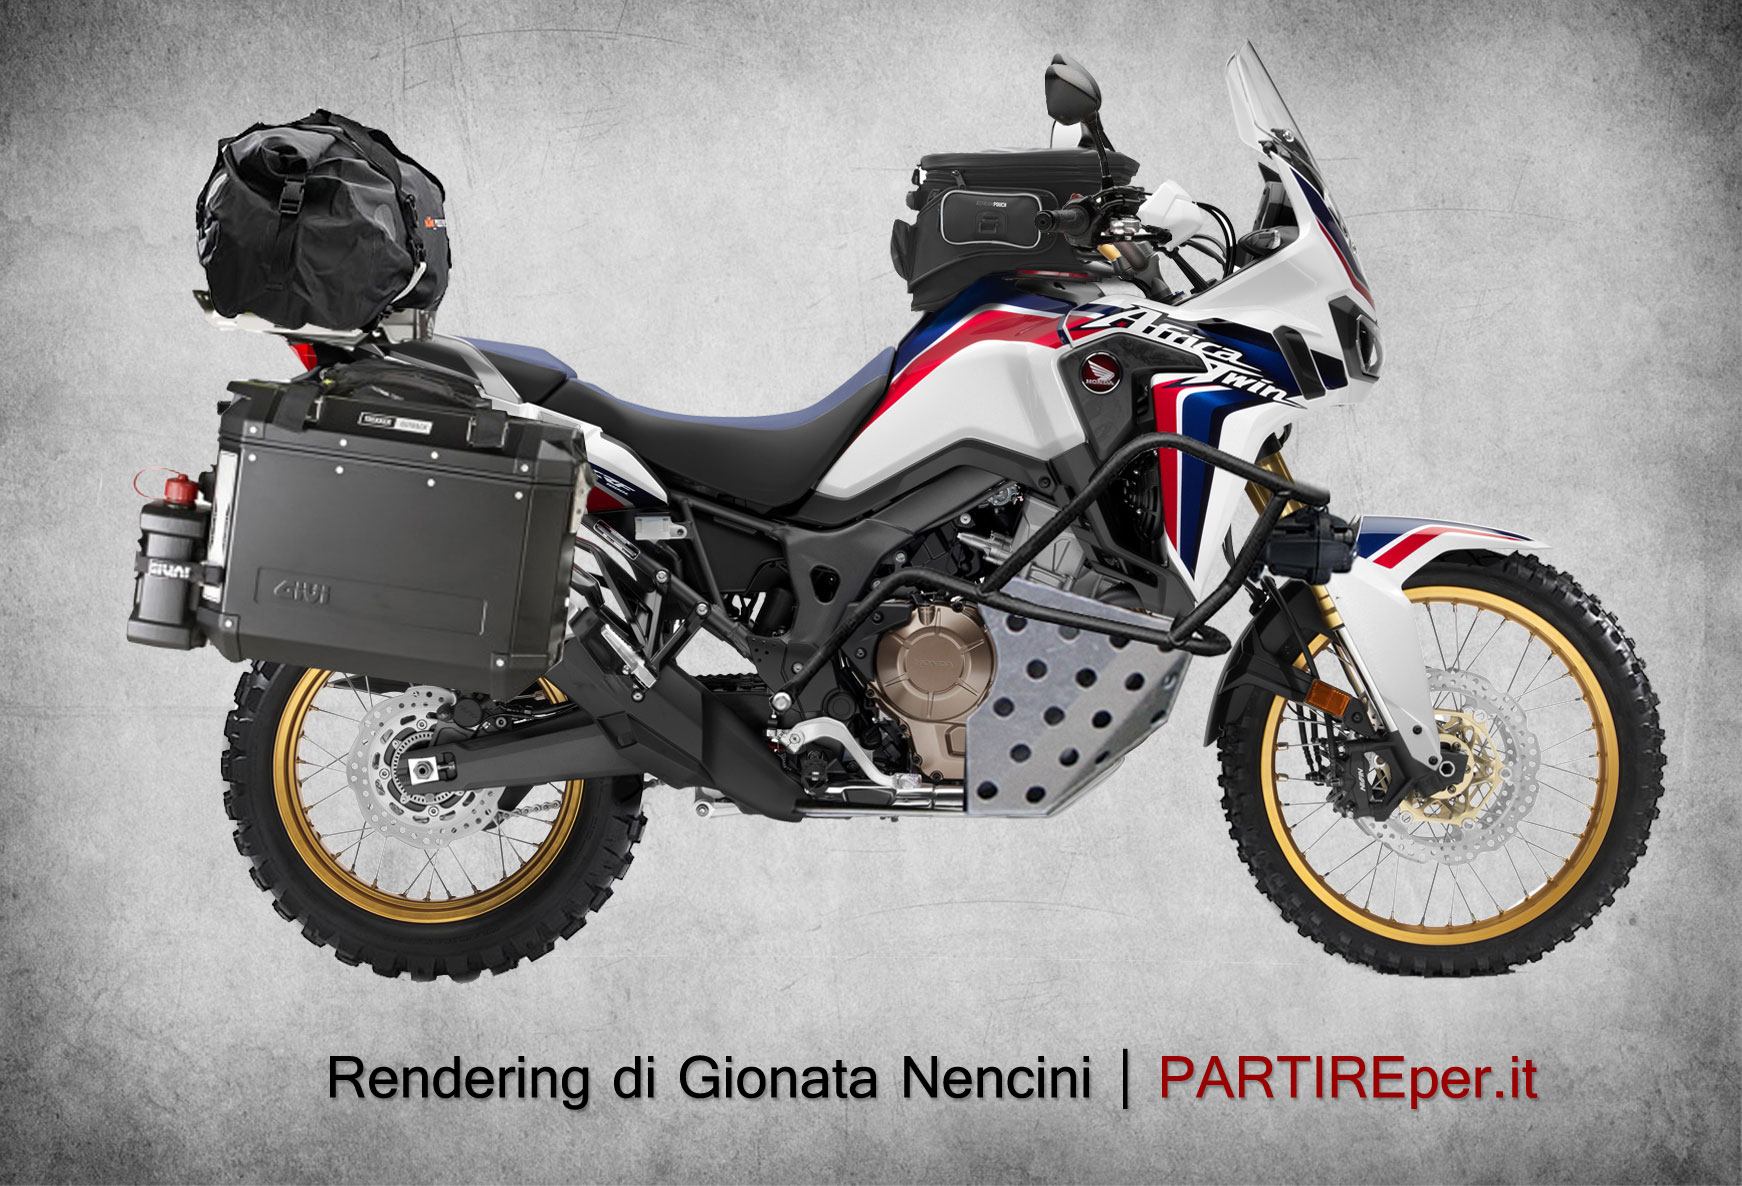 africa twin with panniers and crash bars honda crf1000l africa twin forum. Black Bedroom Furniture Sets. Home Design Ideas